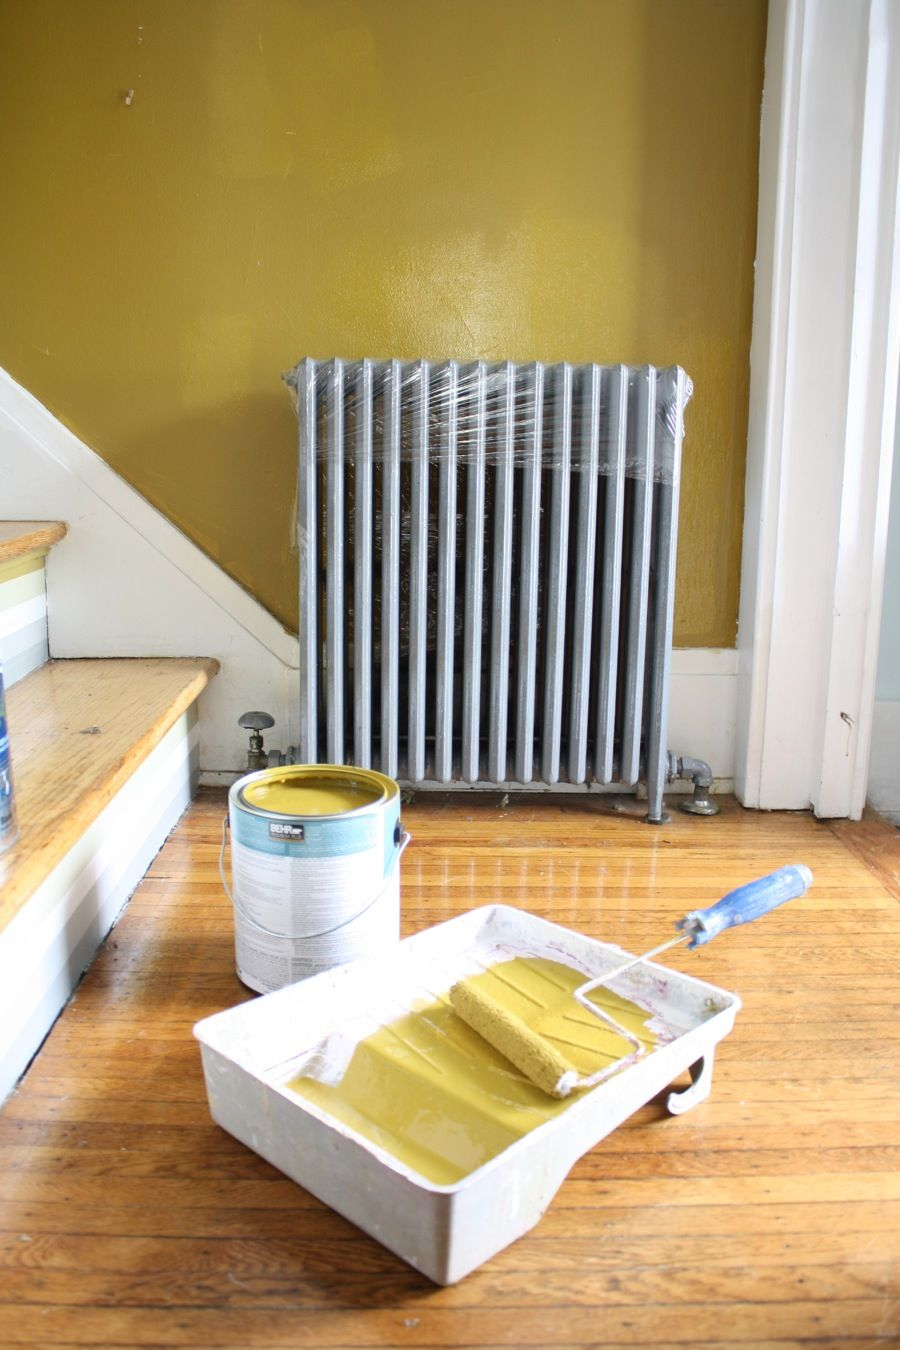 Renovating Fixing Decorating Painting Ideas: Tested: How To Paint Behind A Radiator